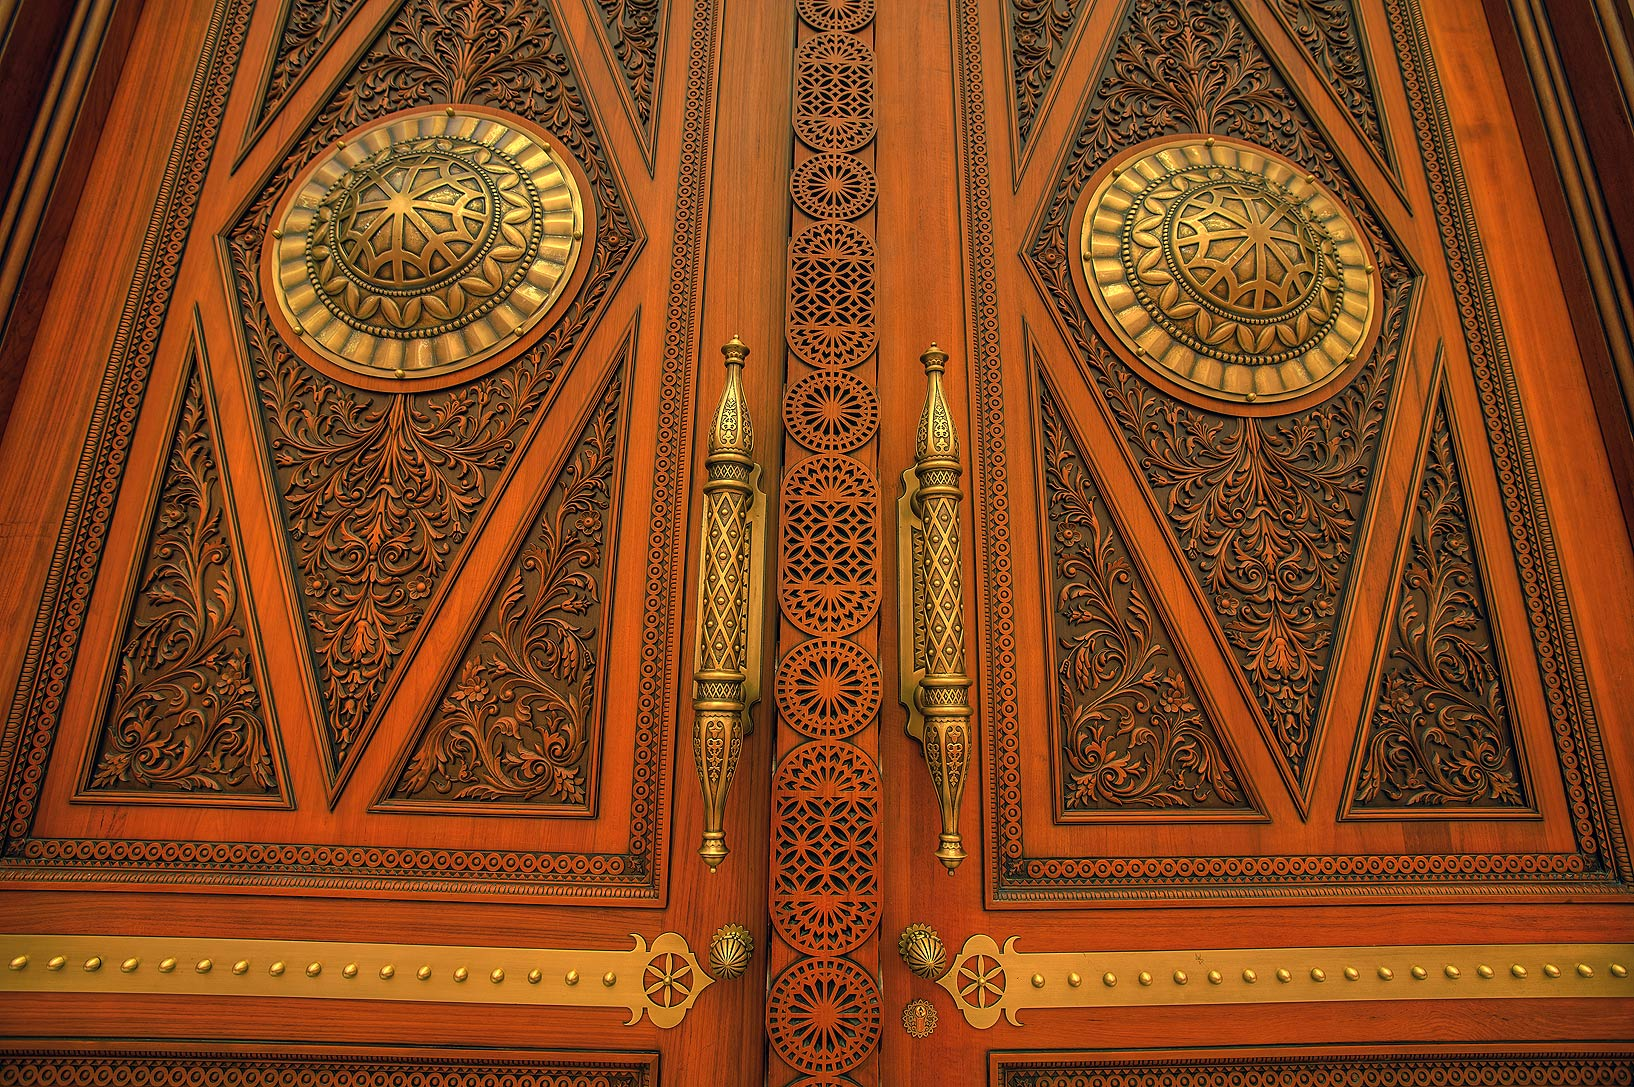 Wooden doors of State Mosque (Sheikh Imam Muhammad Ibn Abdul Wahhab Mosque). Doha, Qatar